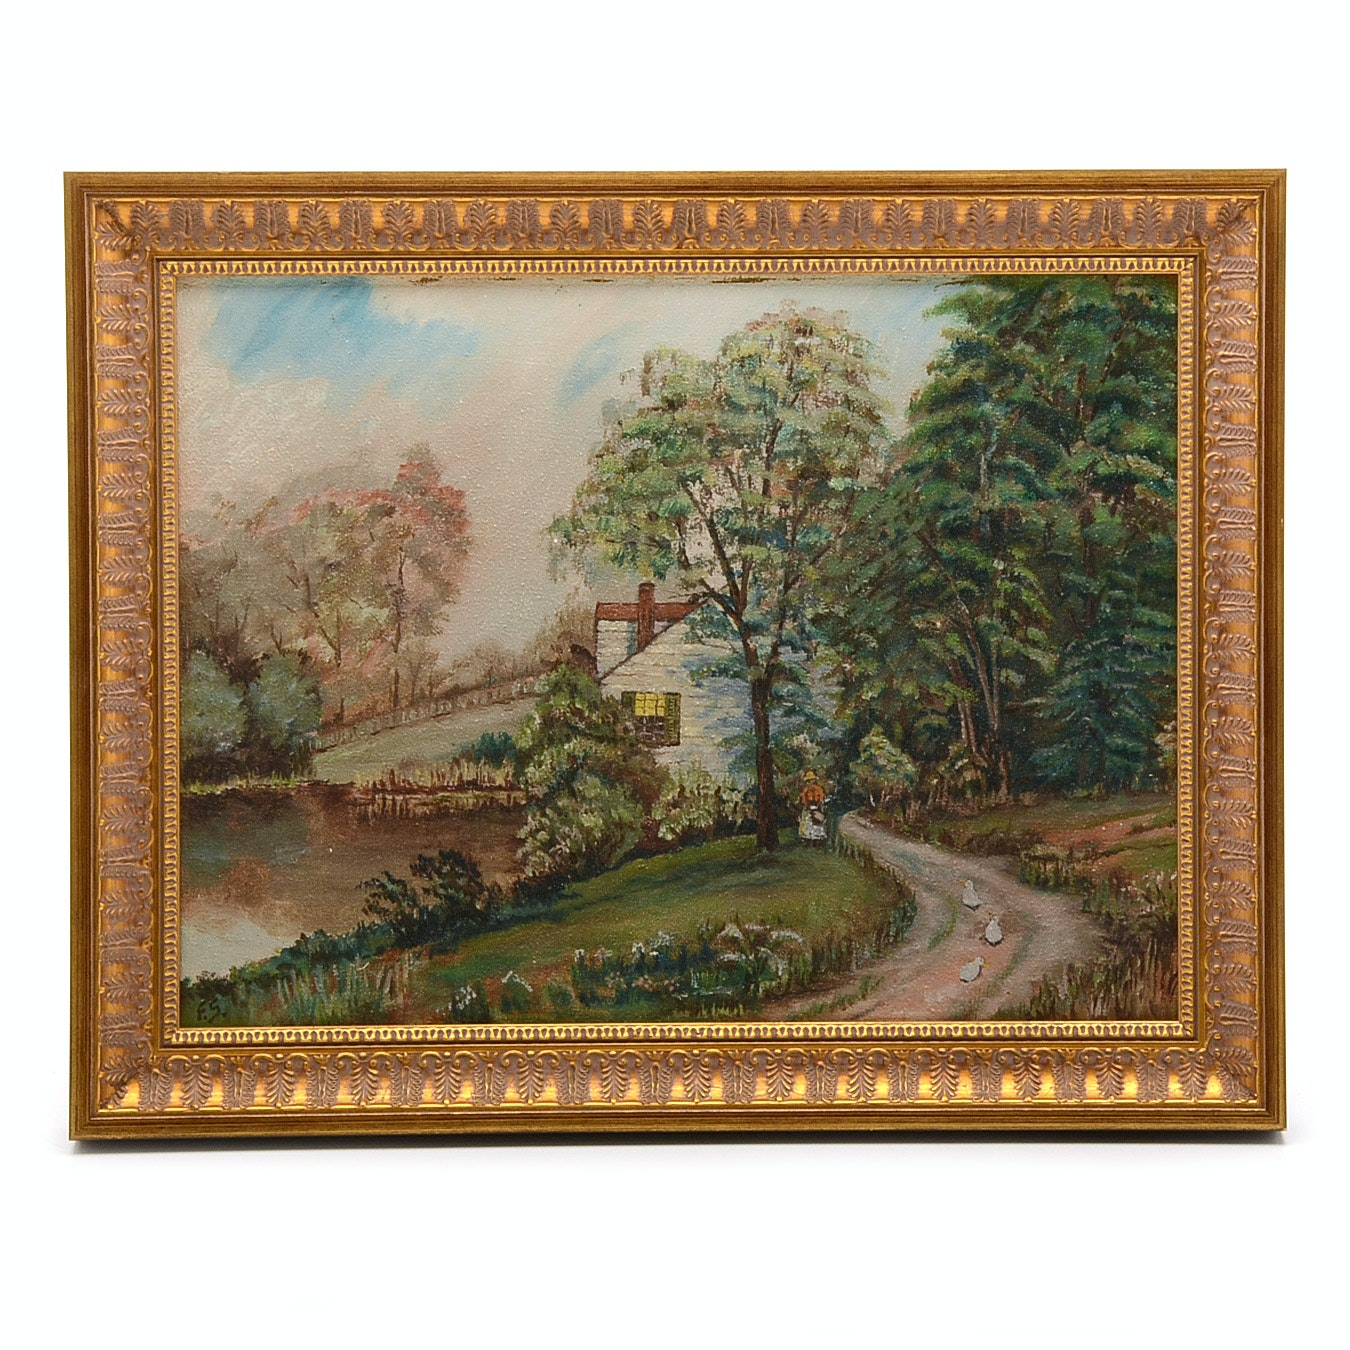 Signed Vintage Oil Painting on Canvas of Pastoral Scene